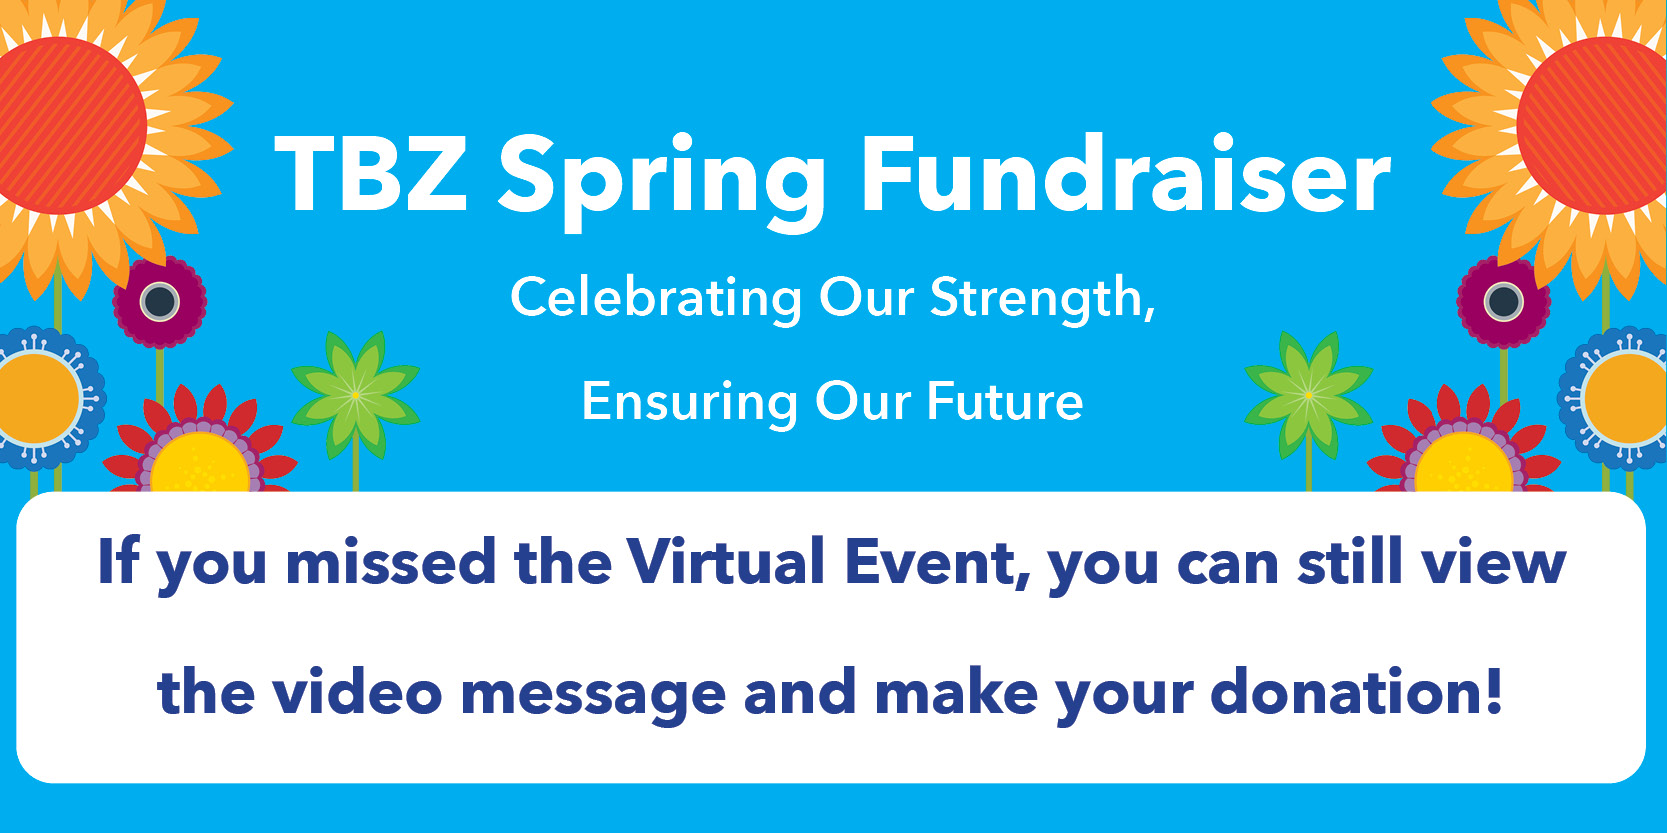 "<a href=""https://www.tbzbrookline.org/spring-fundraiser-2020.html#""